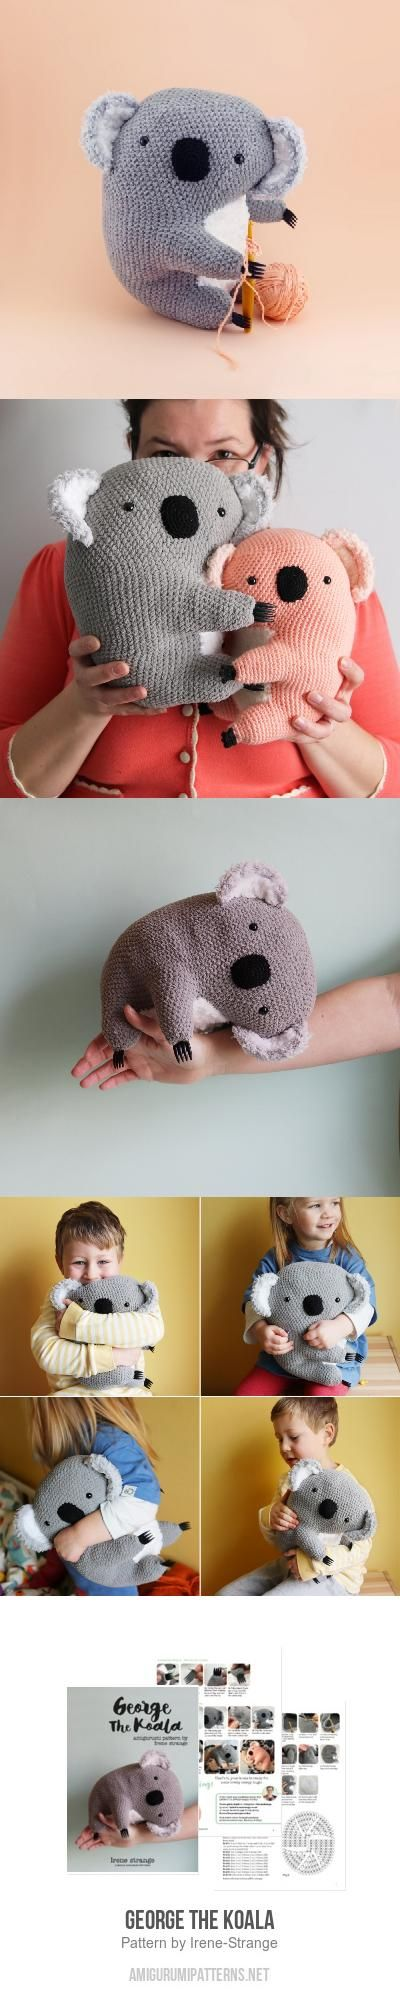 George The Koala Amigurumi Pattern